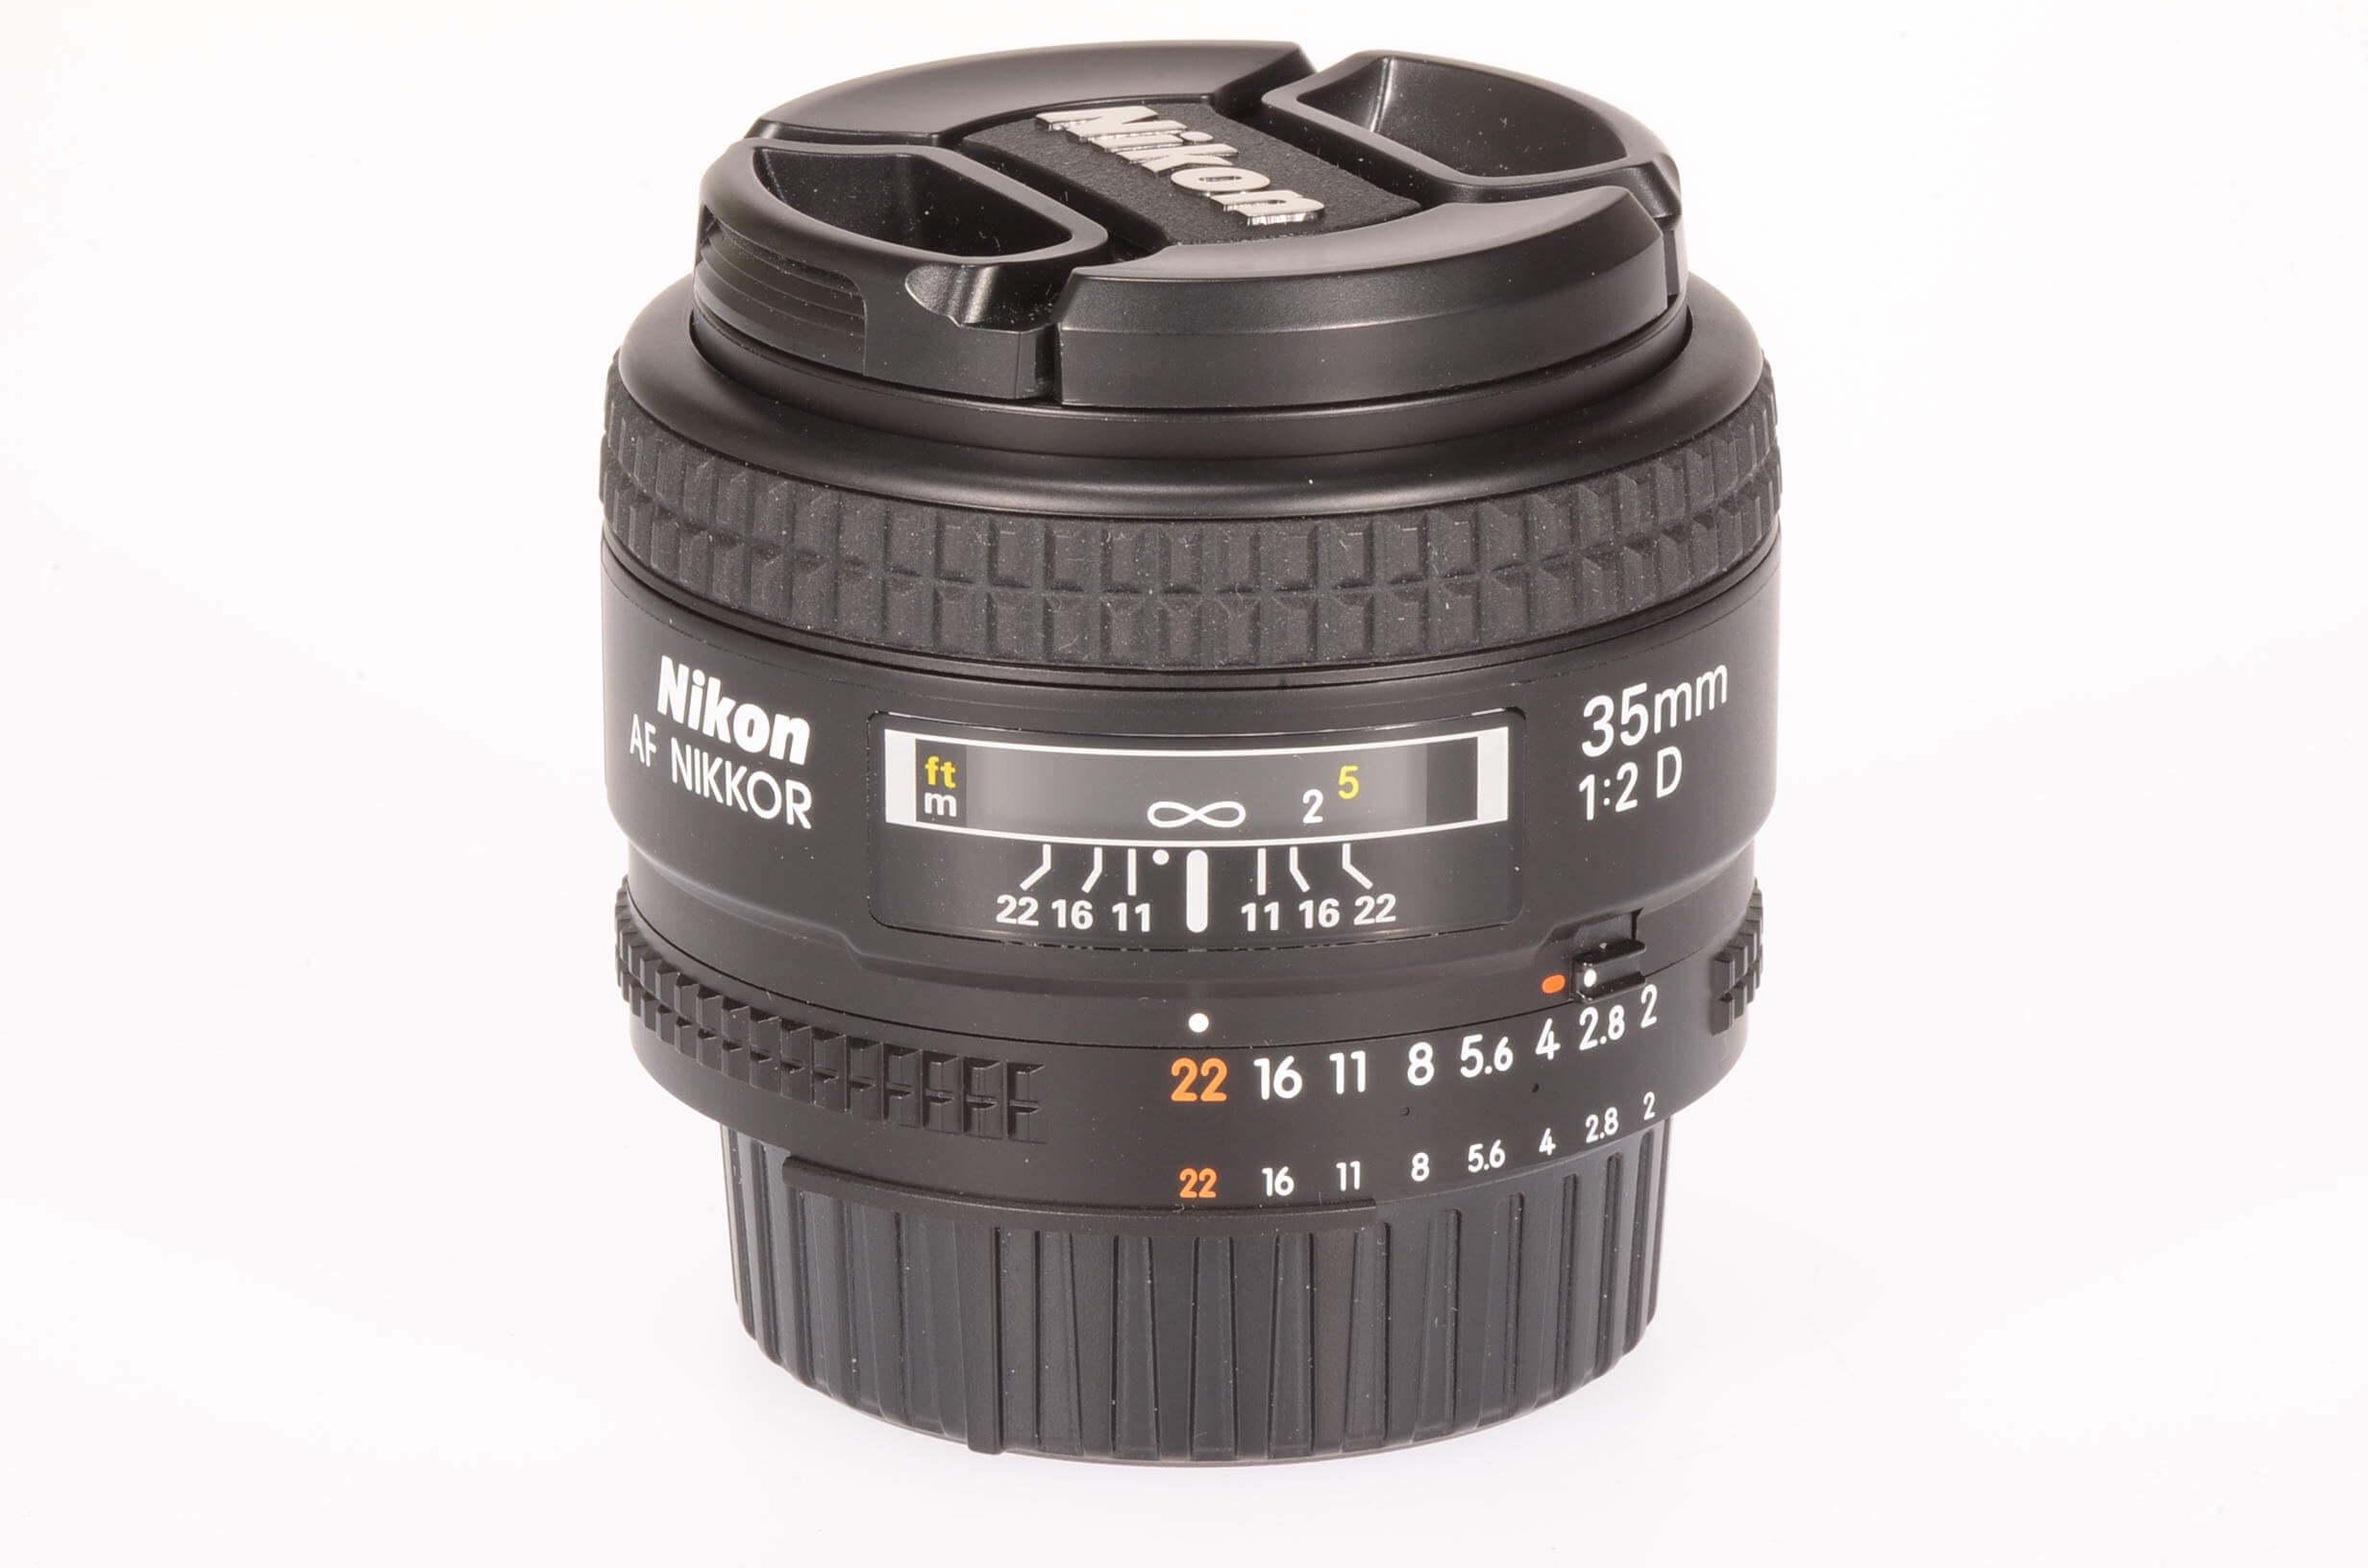 Nikon 35mm f2 AF D, boxed and 100% mint!